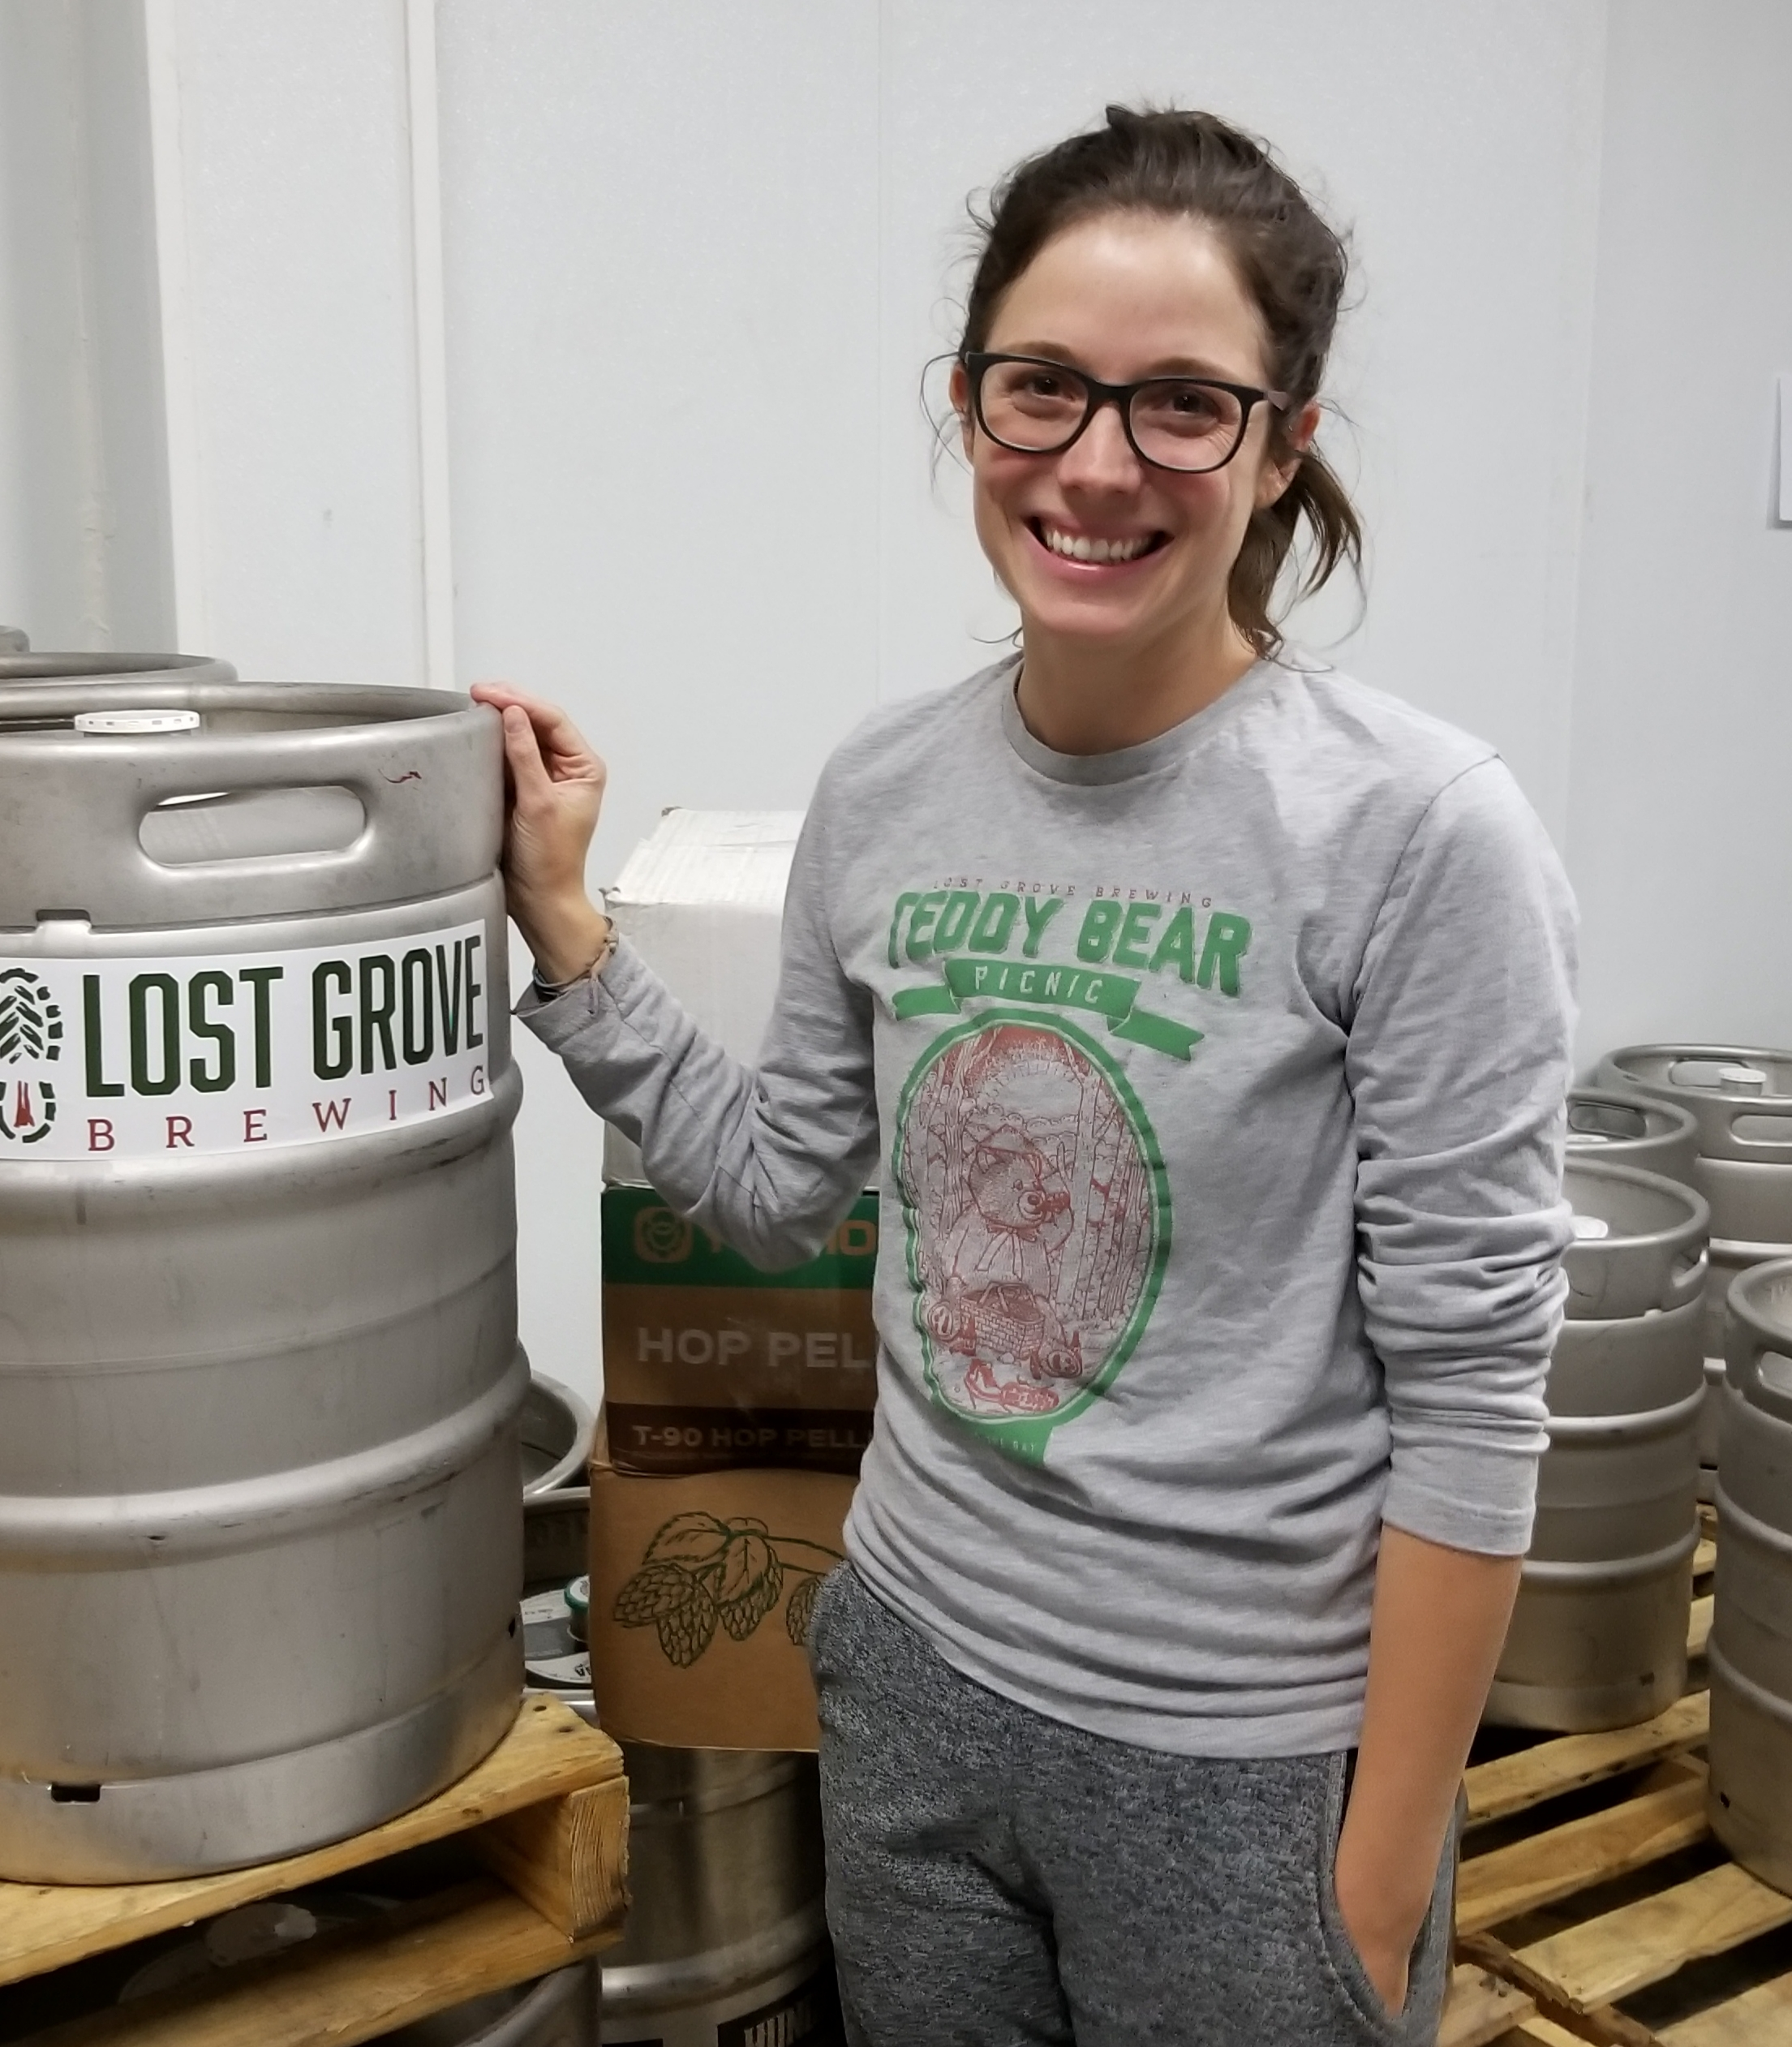 Lost Grove tap room manager Kylie Bolland, photo by Phil Galewitz